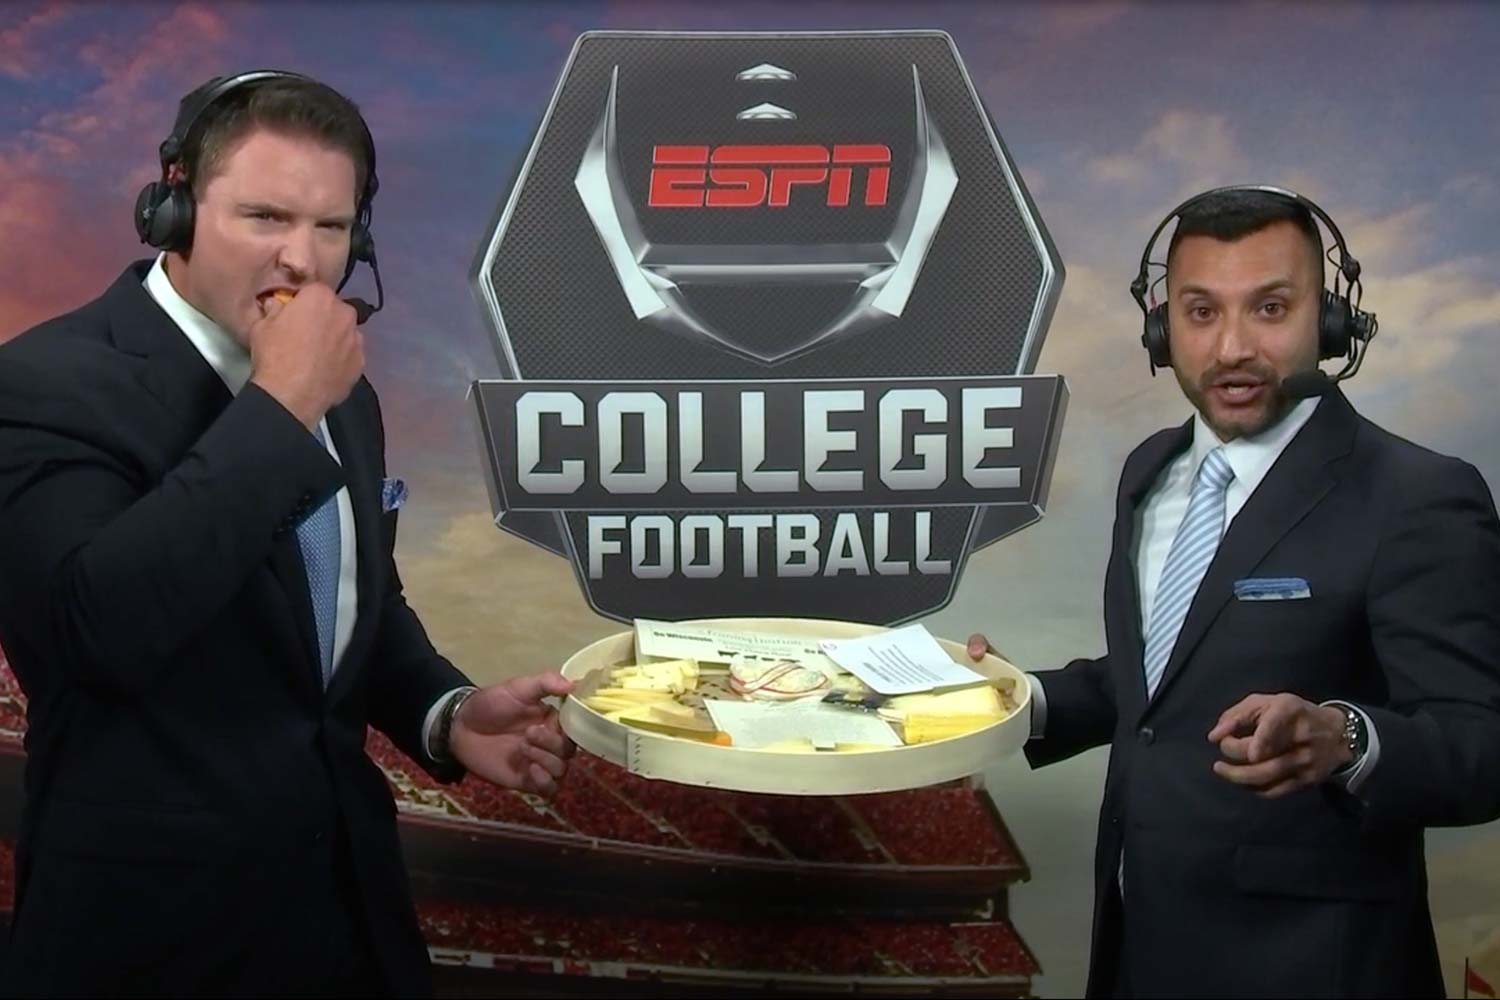 Espn S College Football Announcers Really Nailed Madison The Bozho